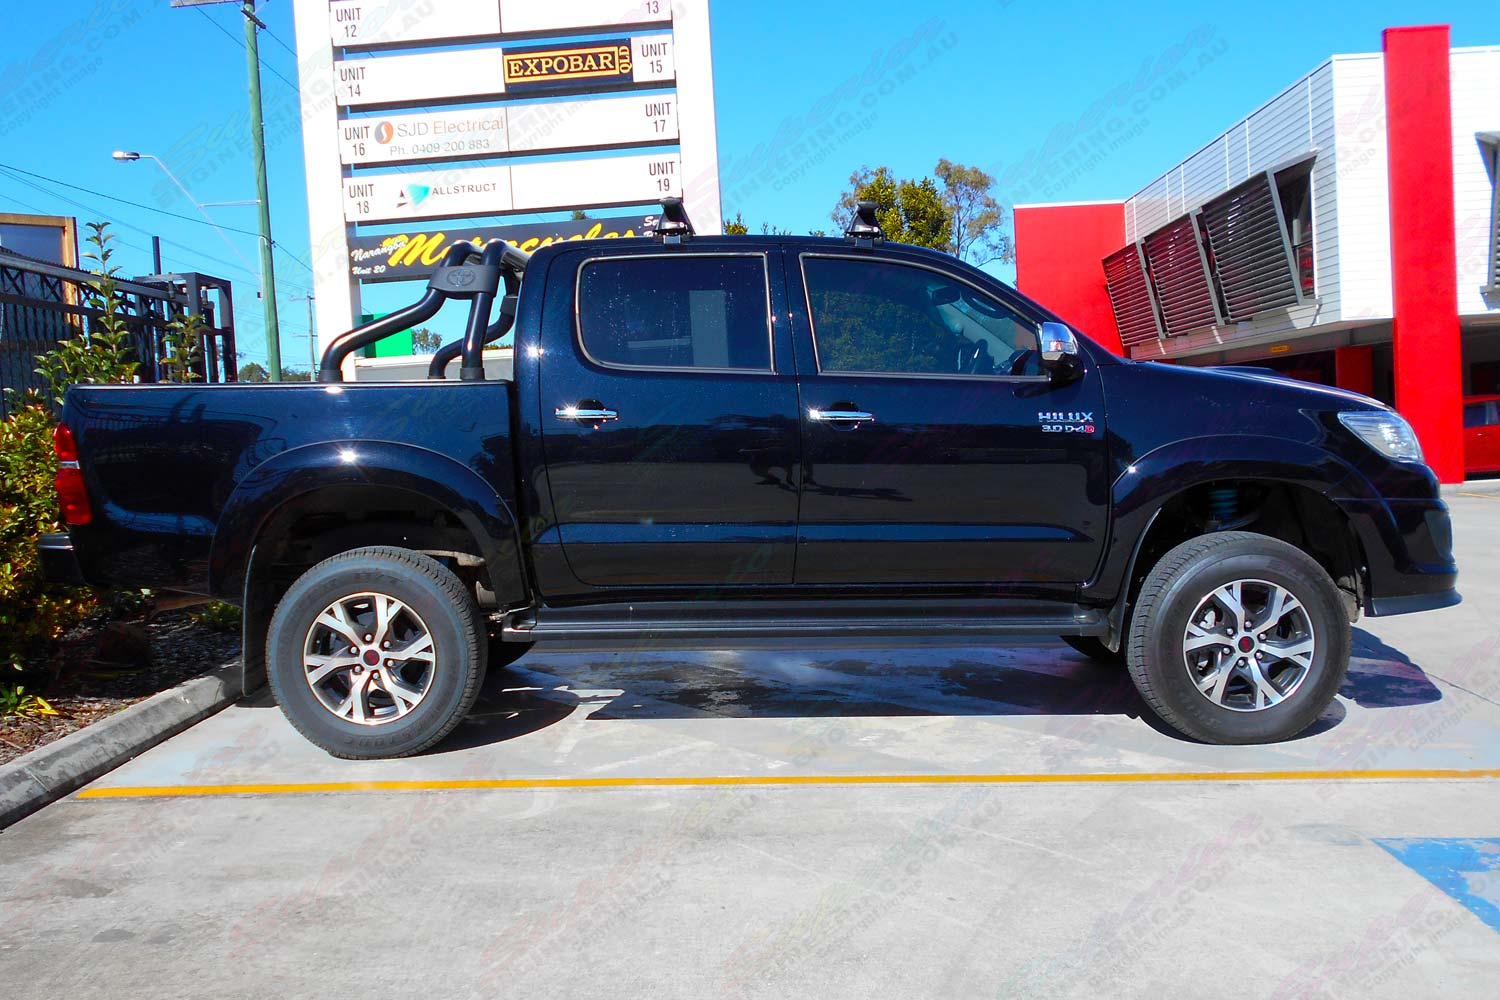 Toyota Hilux Dual Cab - Side View